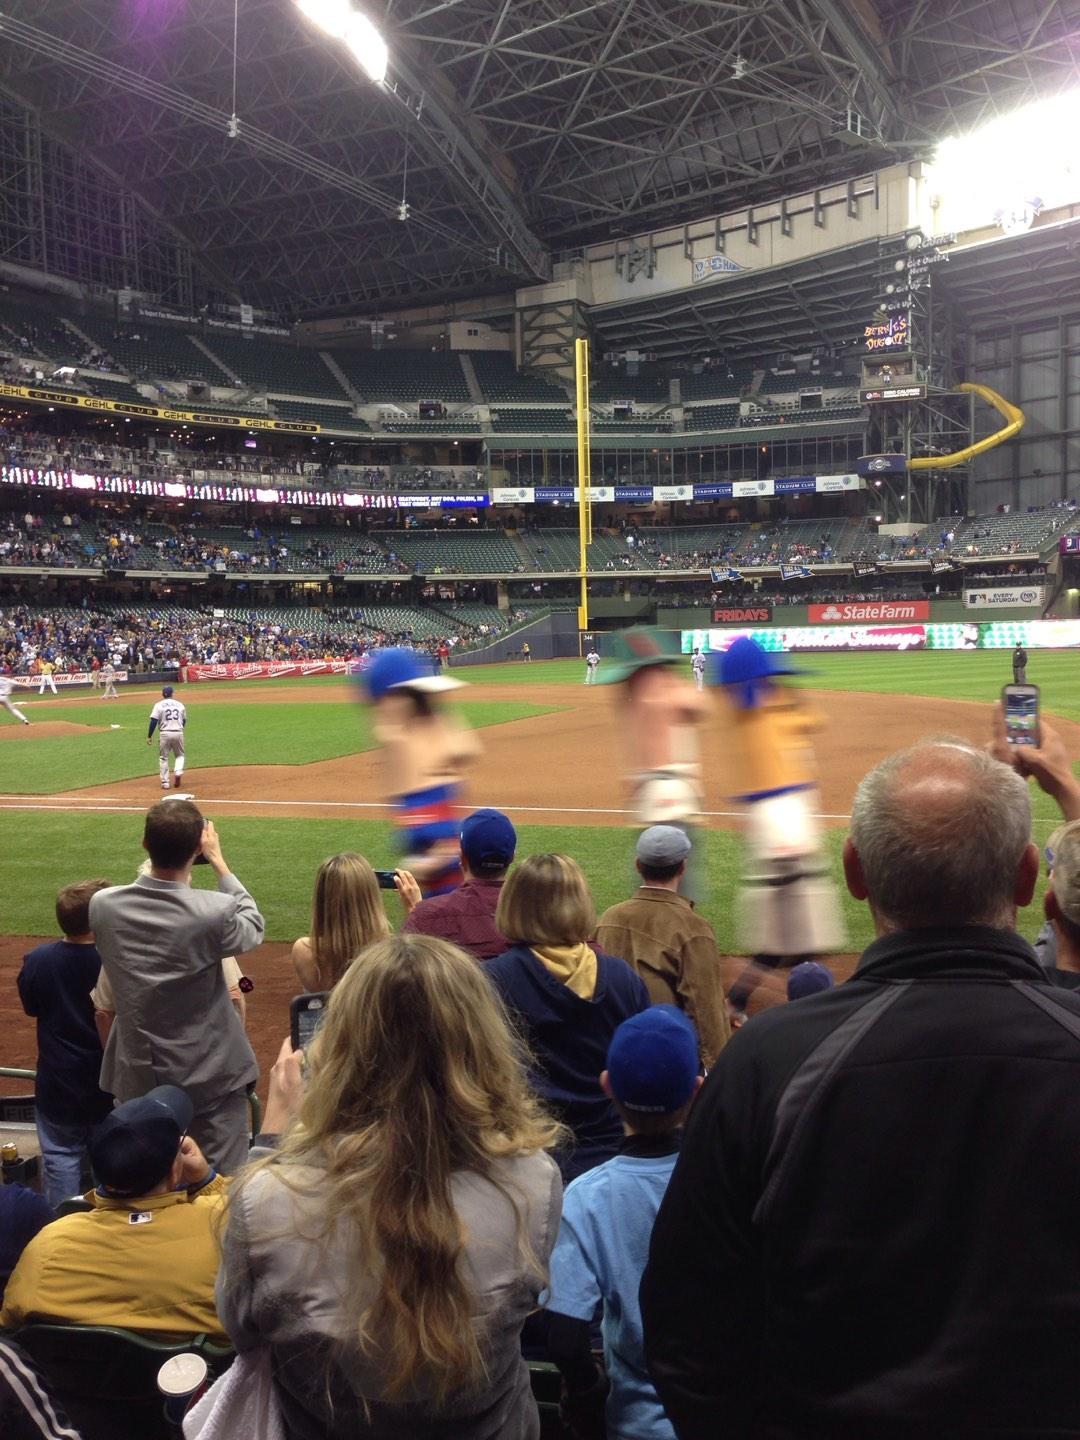 Miller Park Section 111 Row 7 Seat 5